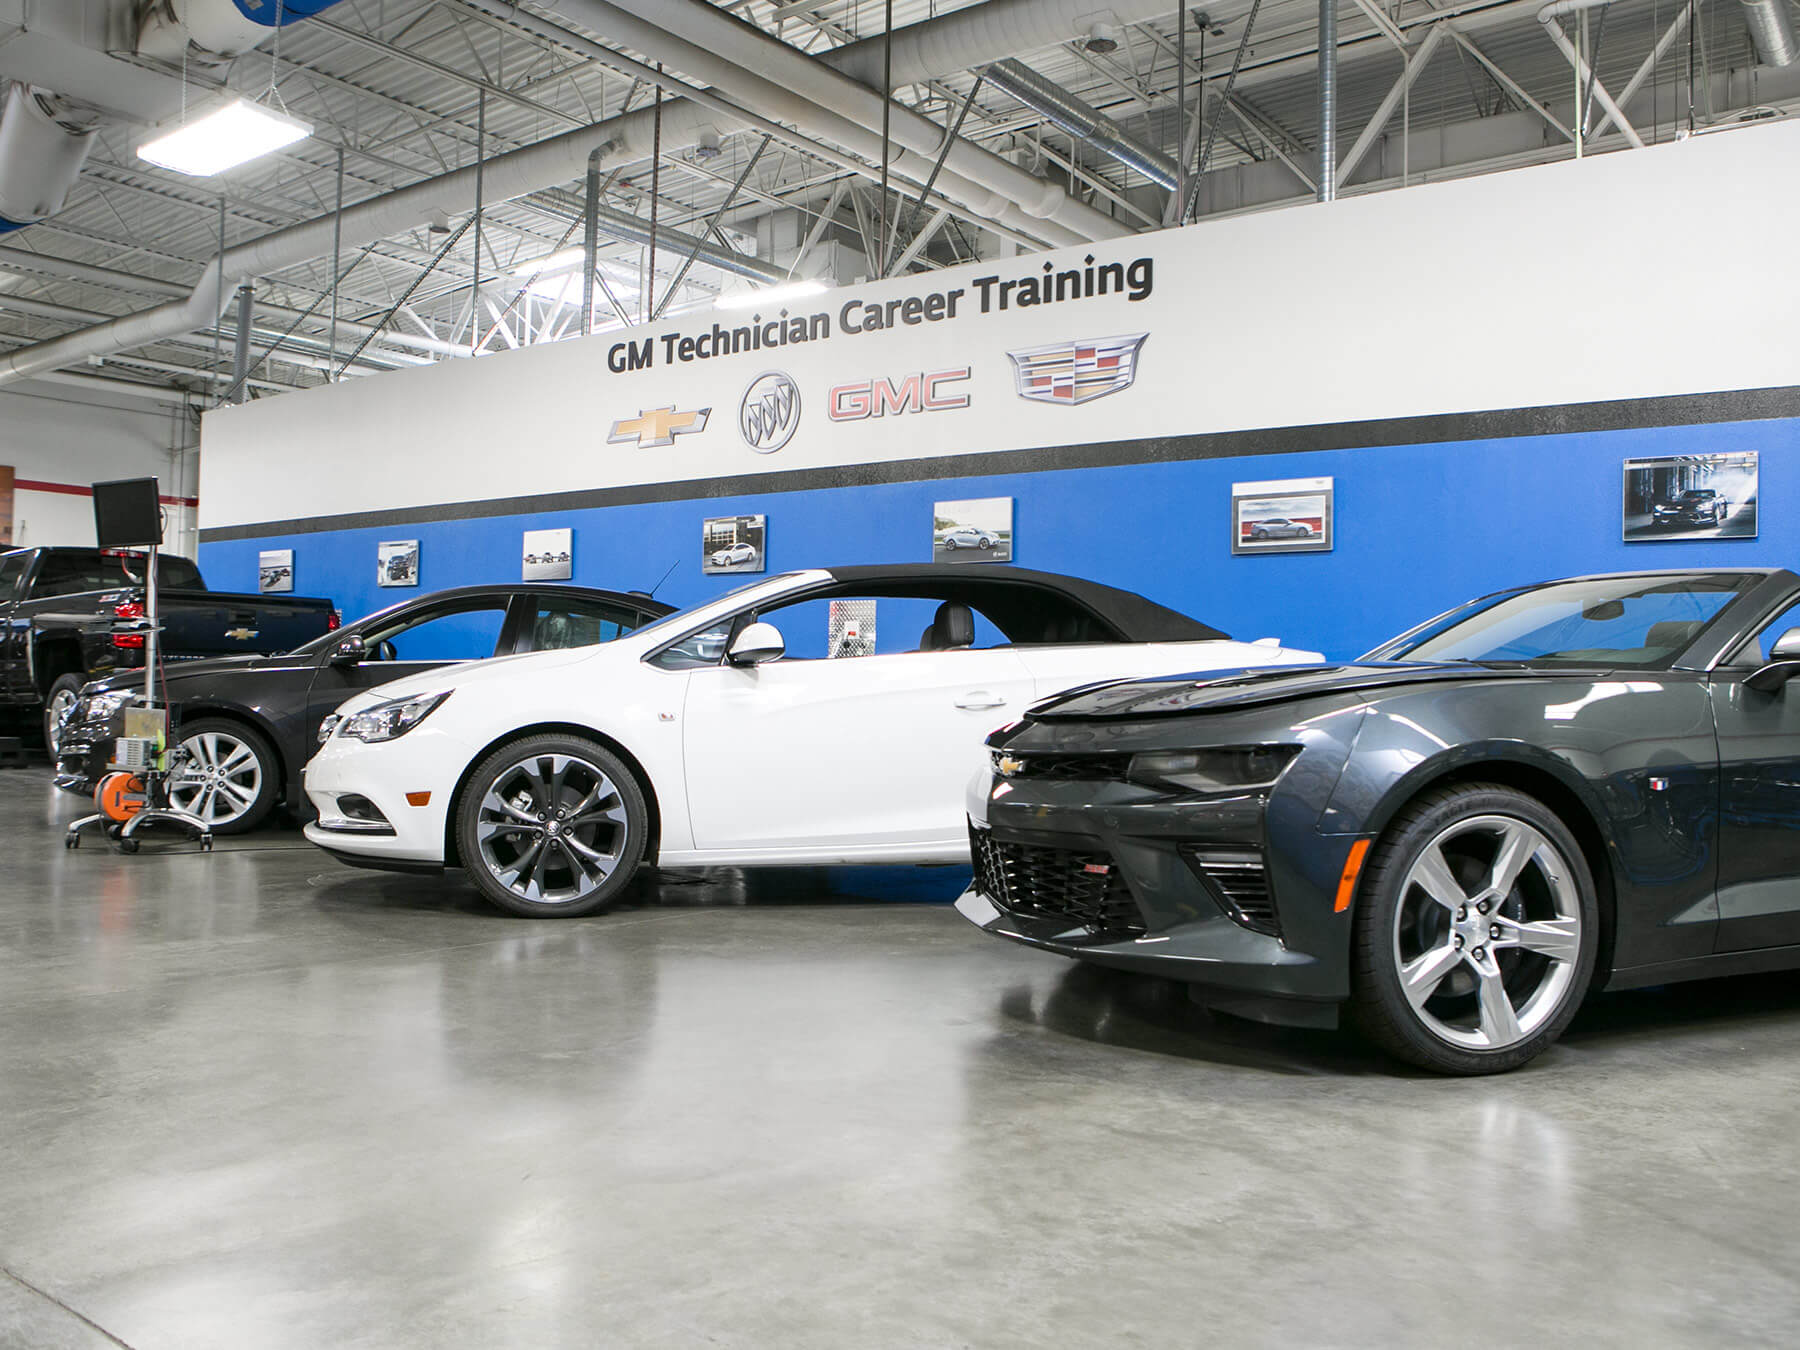 Wide angle photo of cars in the GM lab